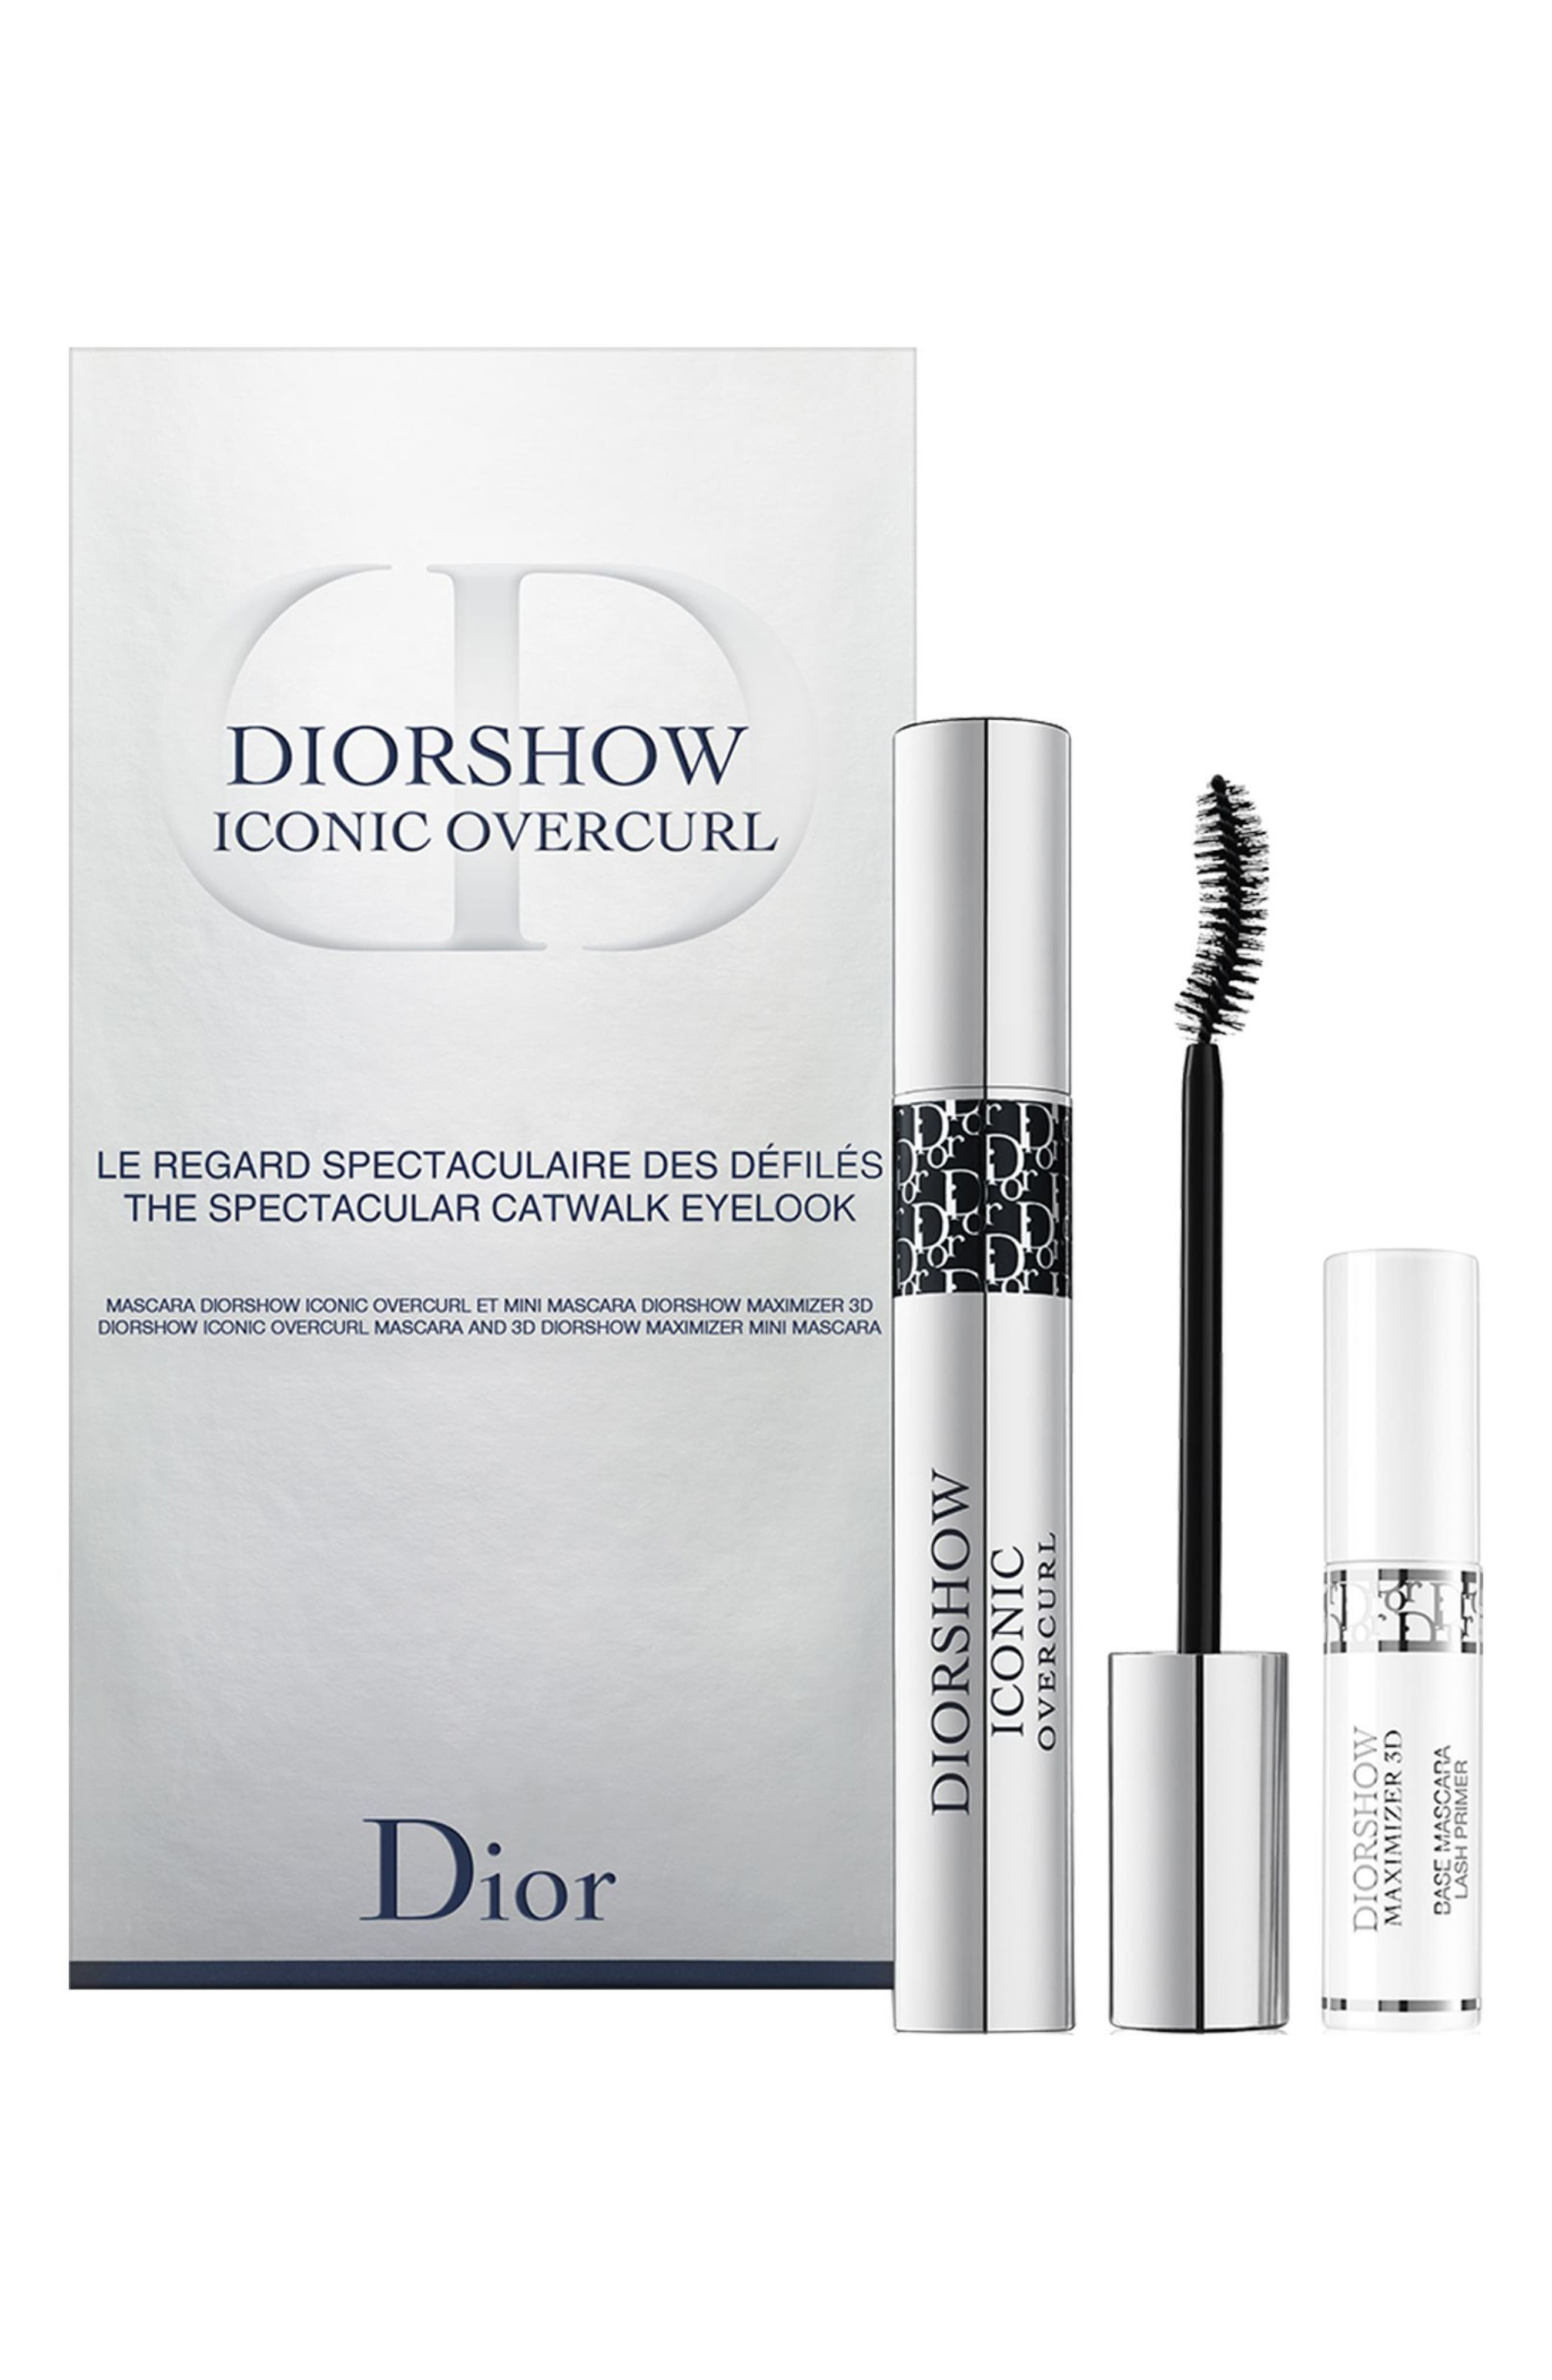 Diorshow Iconic Overcurl The Spectacular Catwalk Mascara Set,                         Main,                         color, No Color